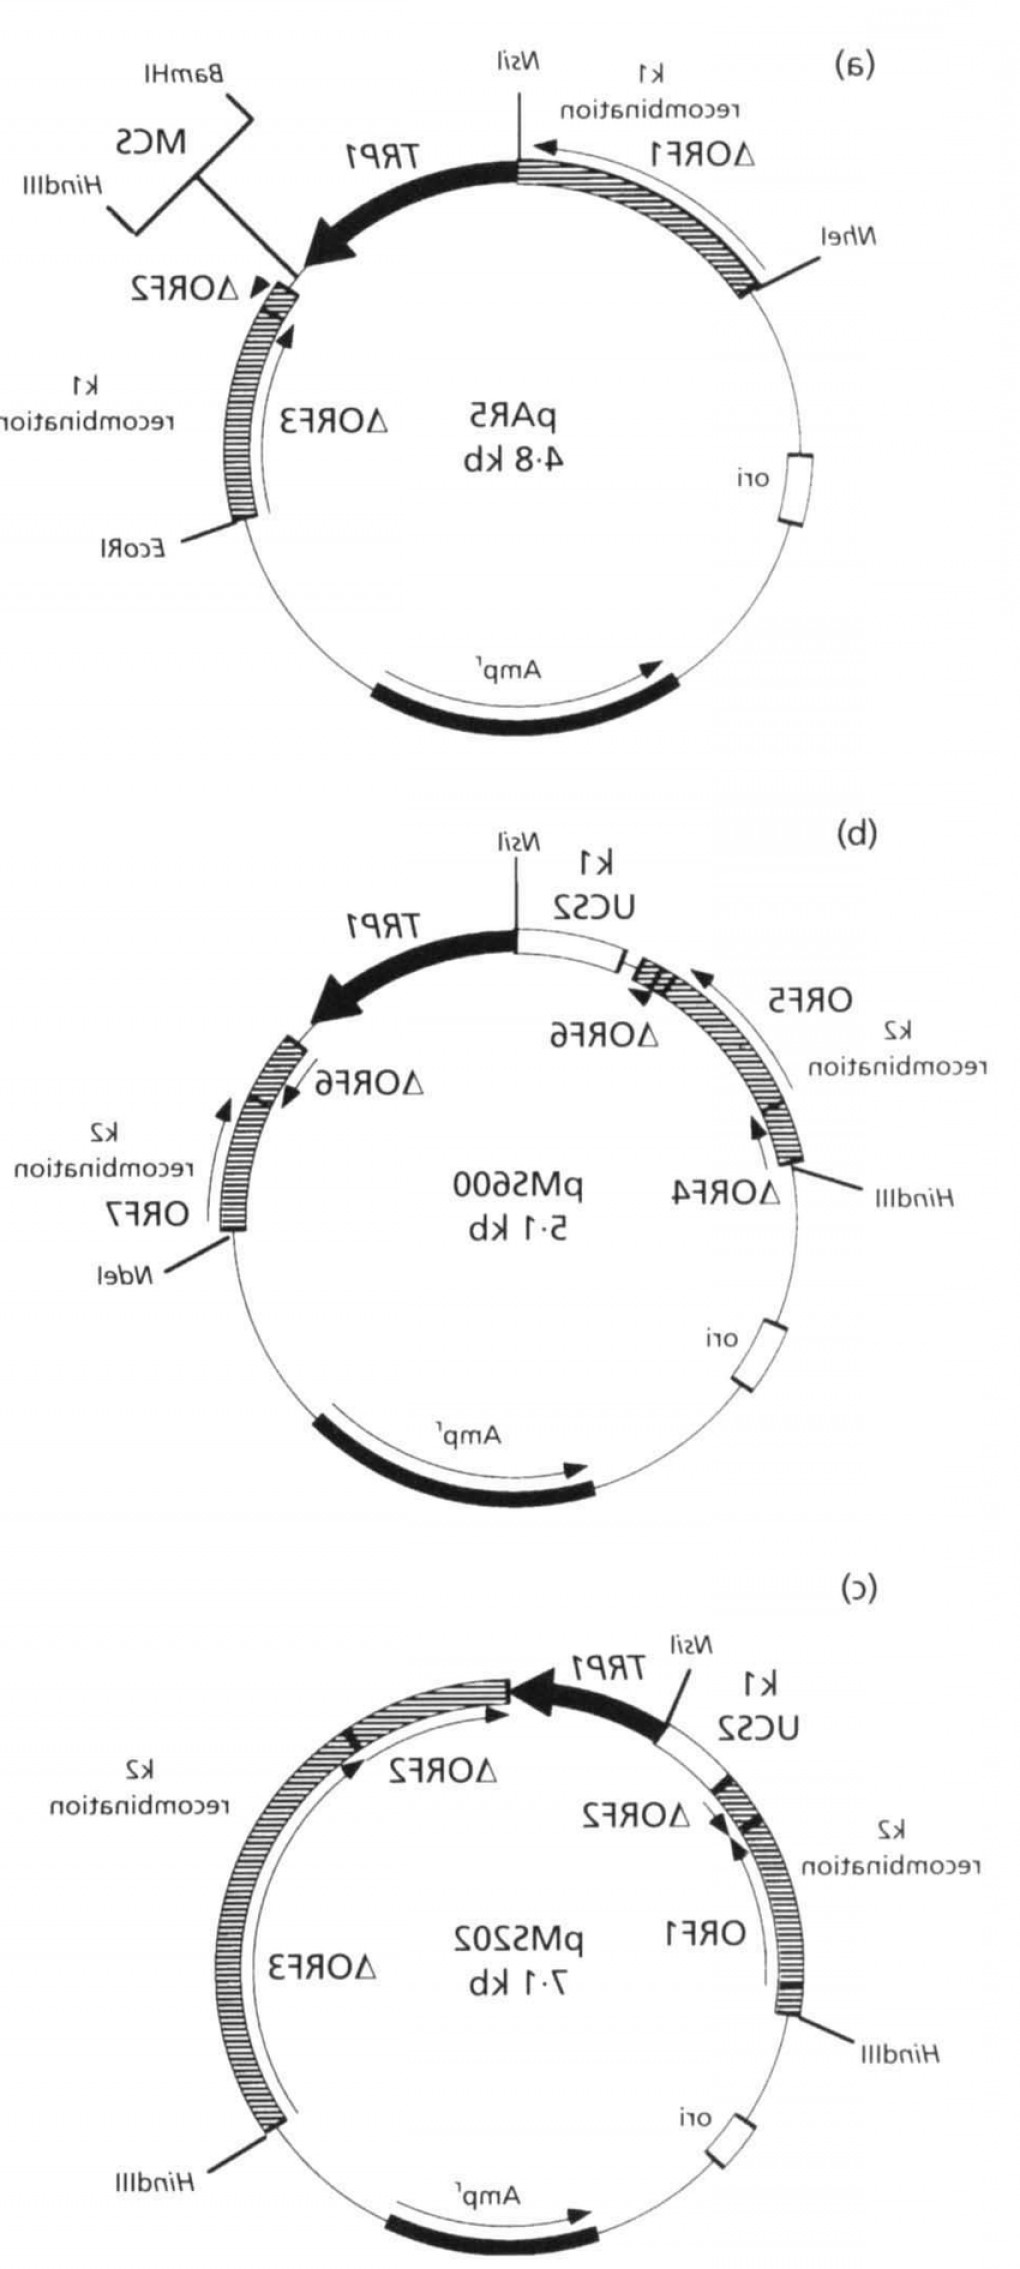 What Are Vectors Used For: Maps Of Plasmid Vectors Par Pm And Pms Used For Genetic Manipulation Of Afig